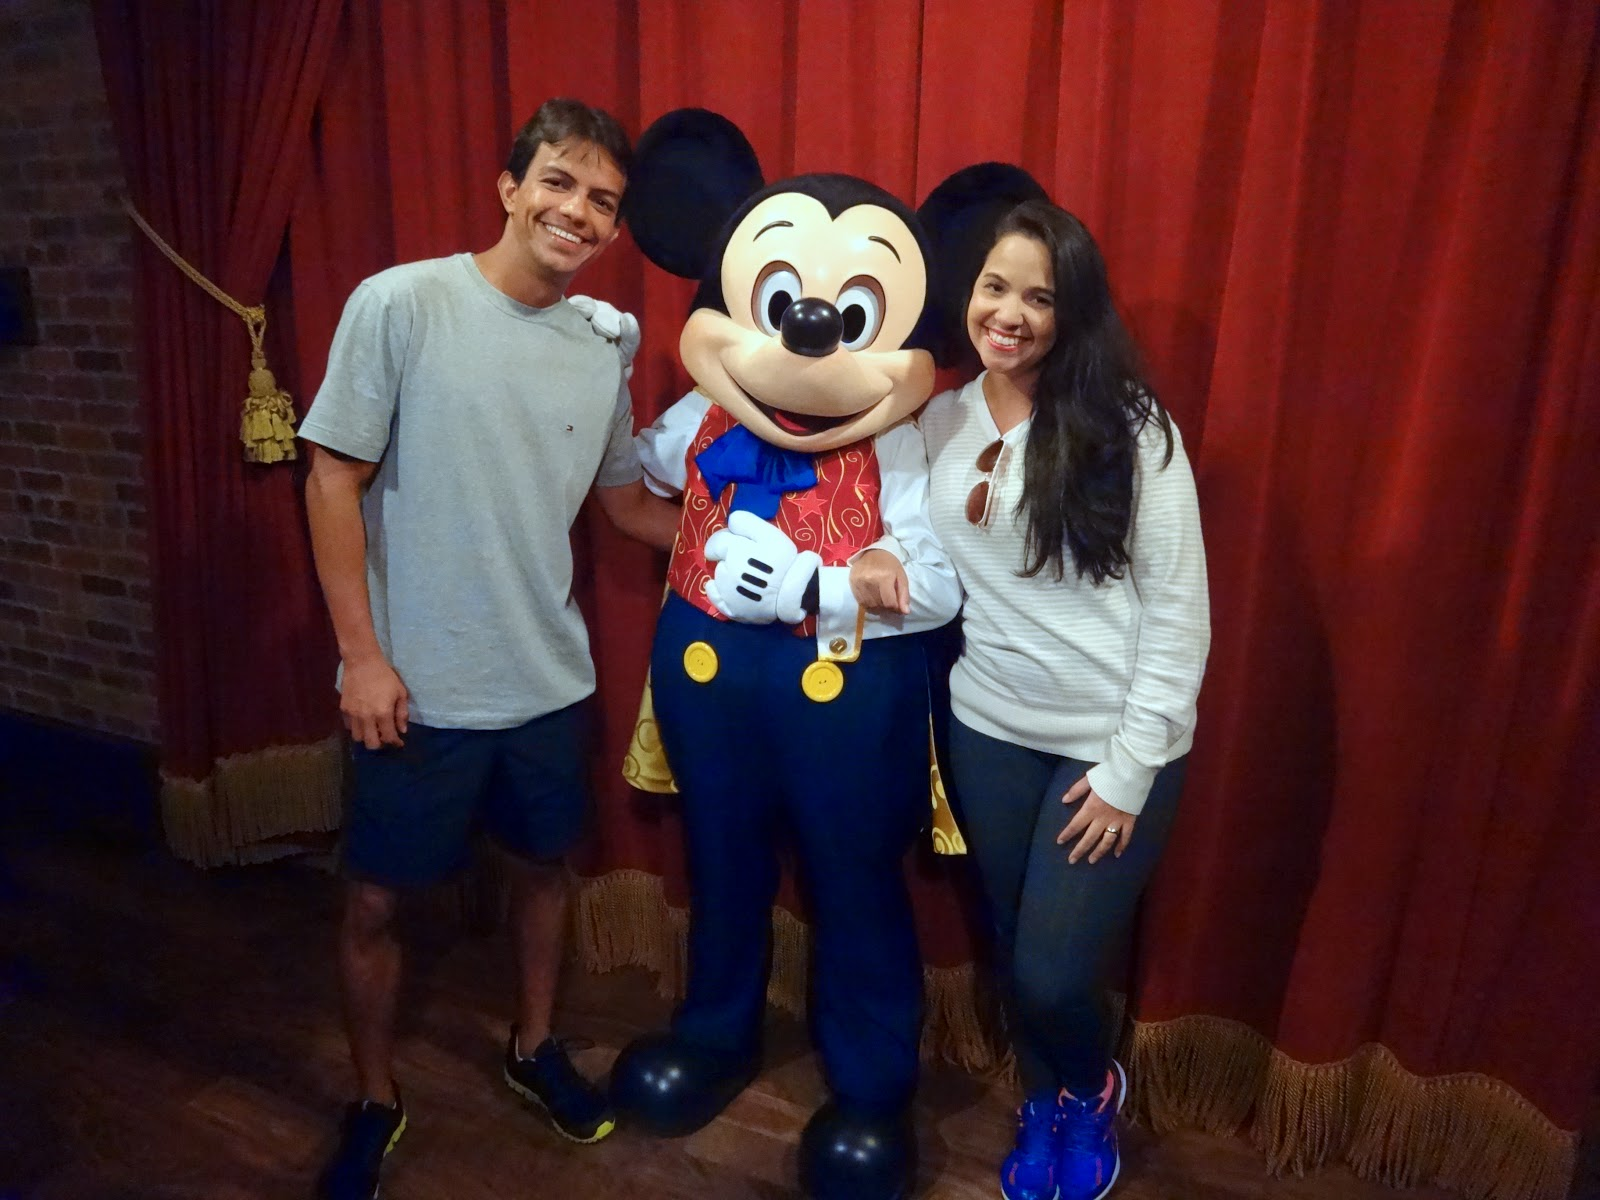 mickey - magic kingdom - orlando - eua